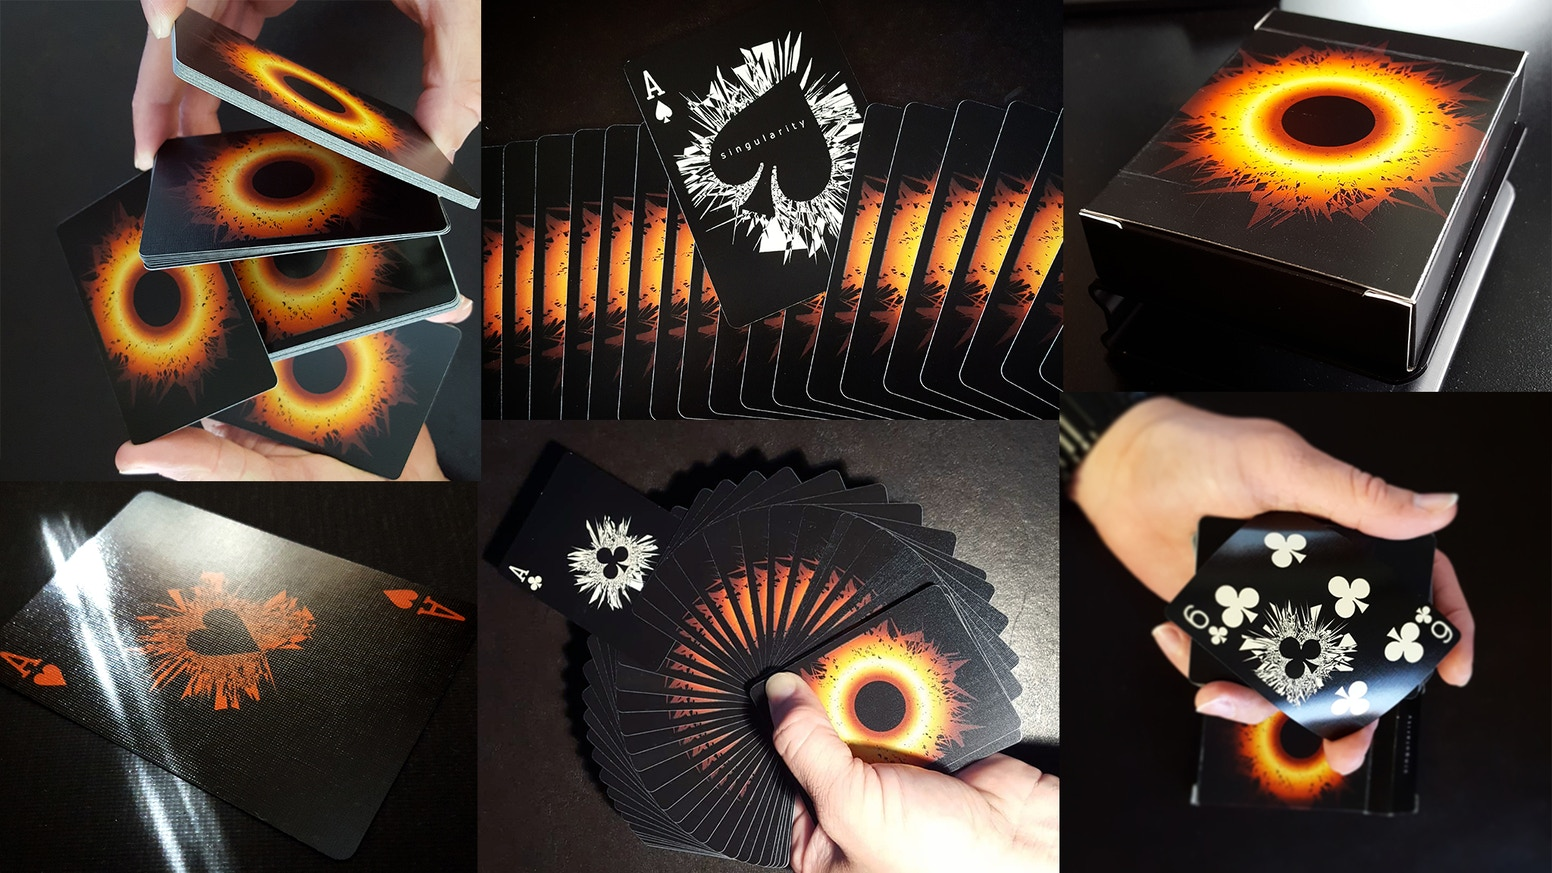 Black hole playing cards. Limited edition. Printed by USPCC. Latecomer? Join use on PledgeManager!